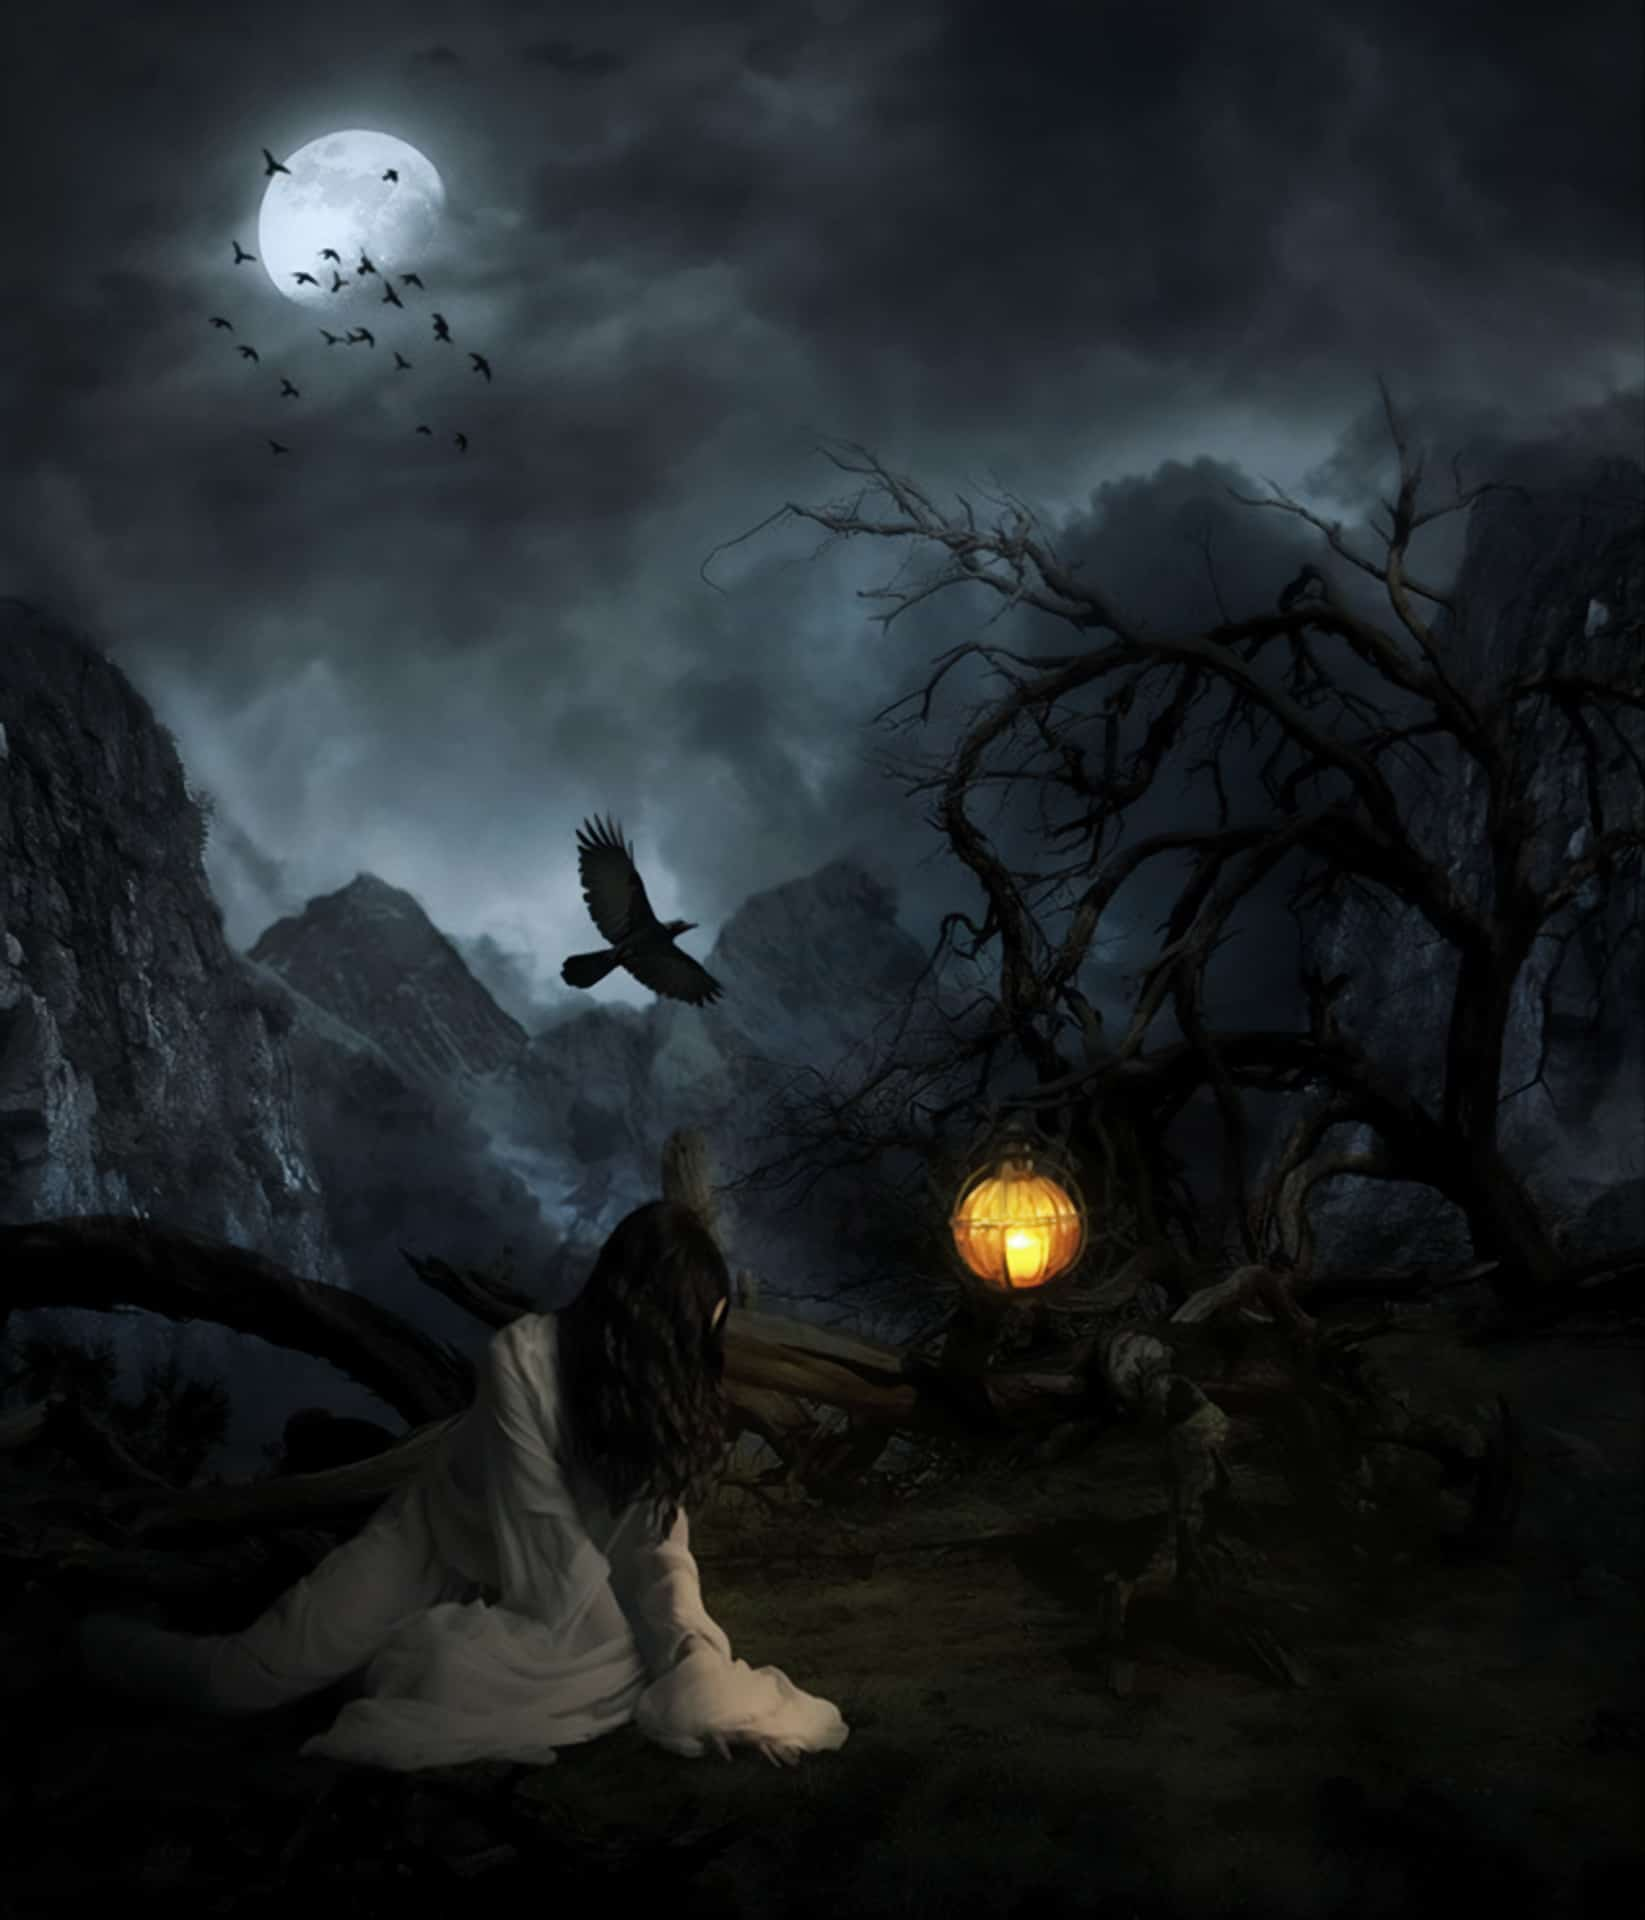 Creepy Lady on a Dark Mountain - Learn How to Create This Composite in Photoshop